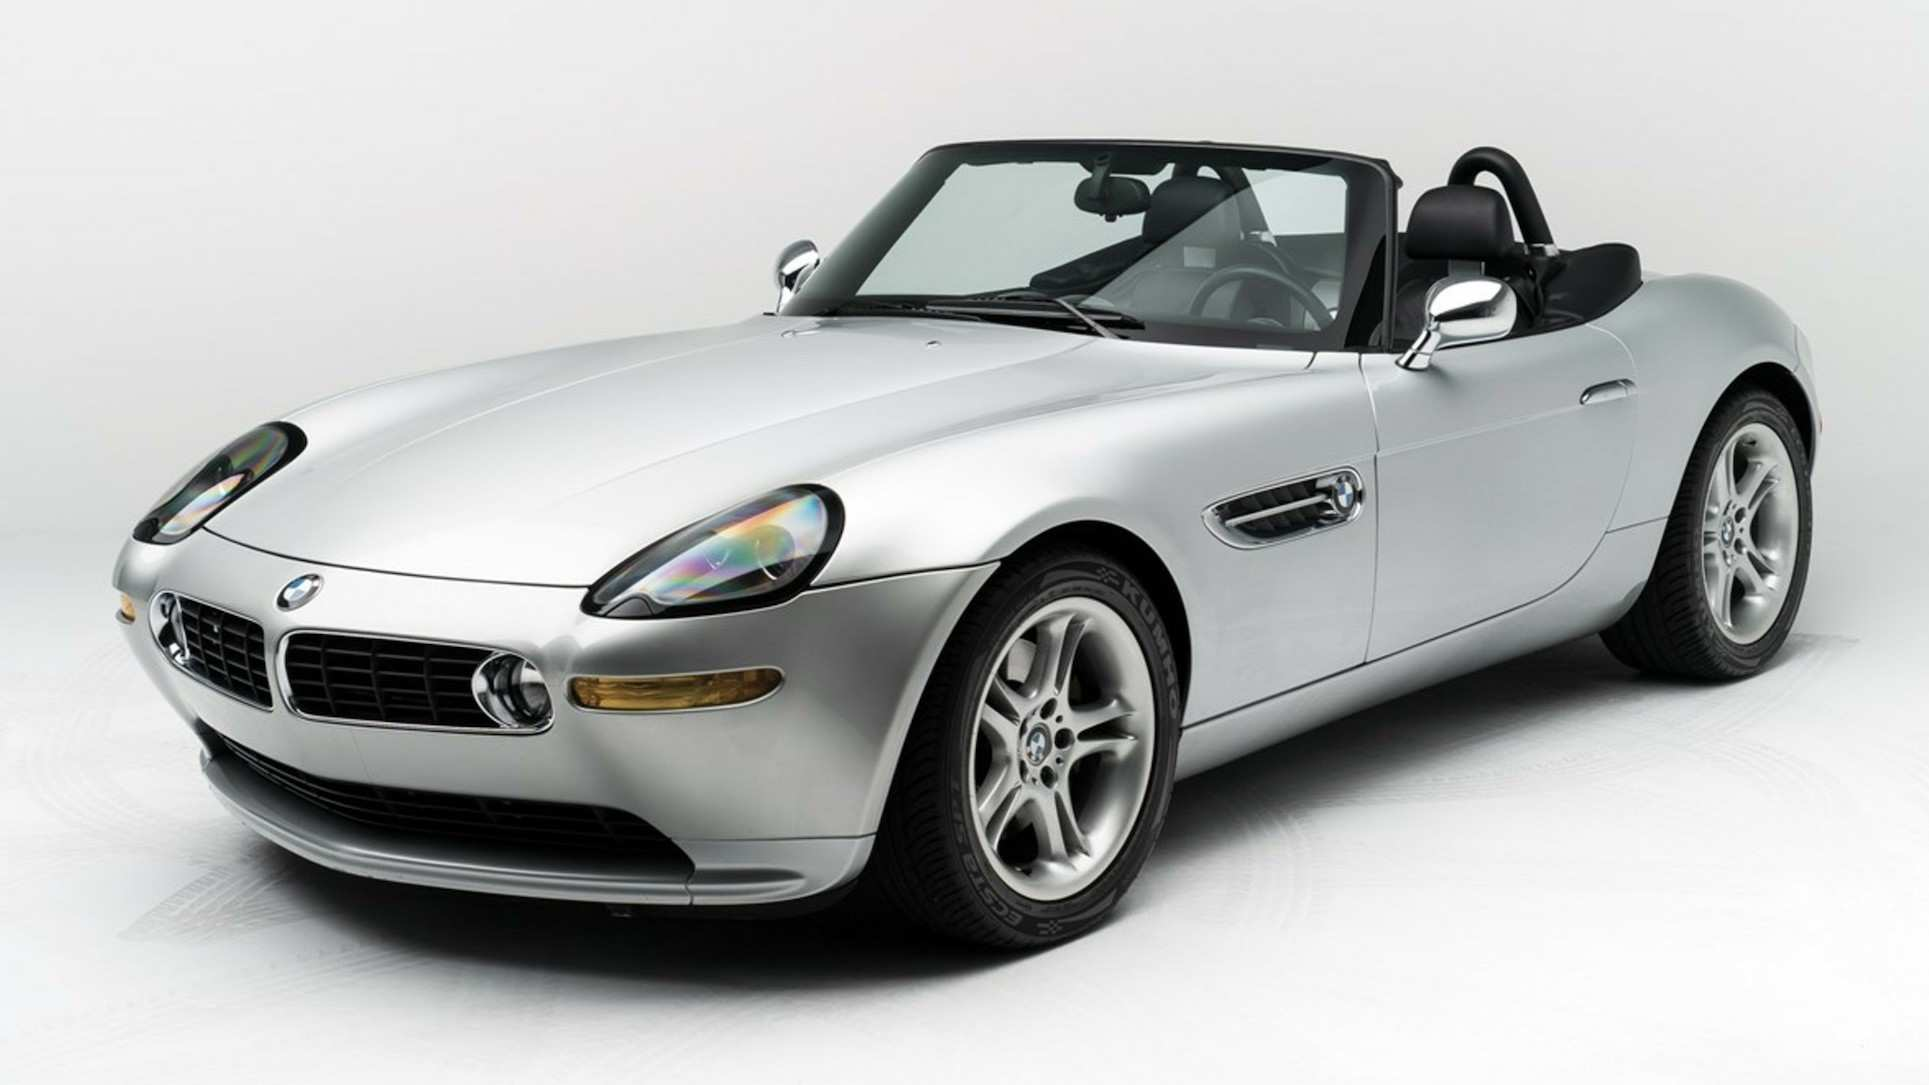 70 Best Review 2020 Bmw Z8 Exterior and Interior with 2020 Bmw Z8